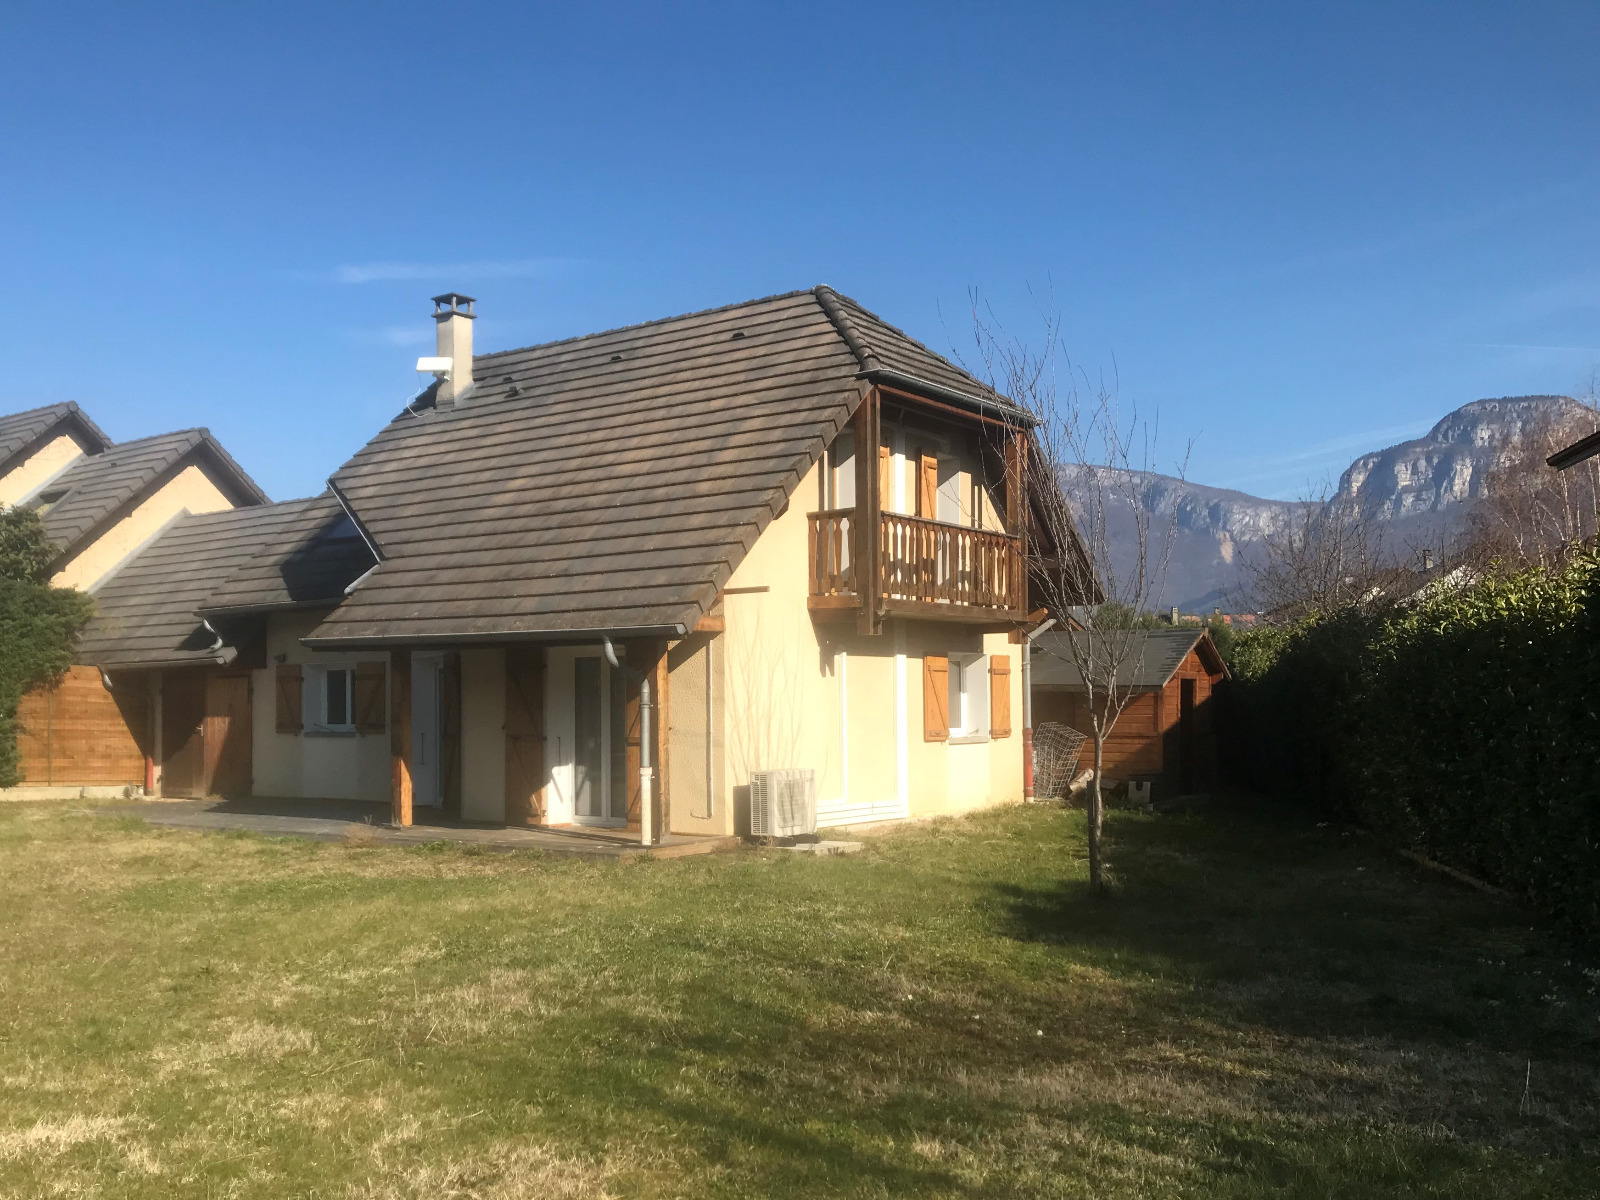 Spi transactions agence immobili re la motte servolex for Agence immobiliere chambery